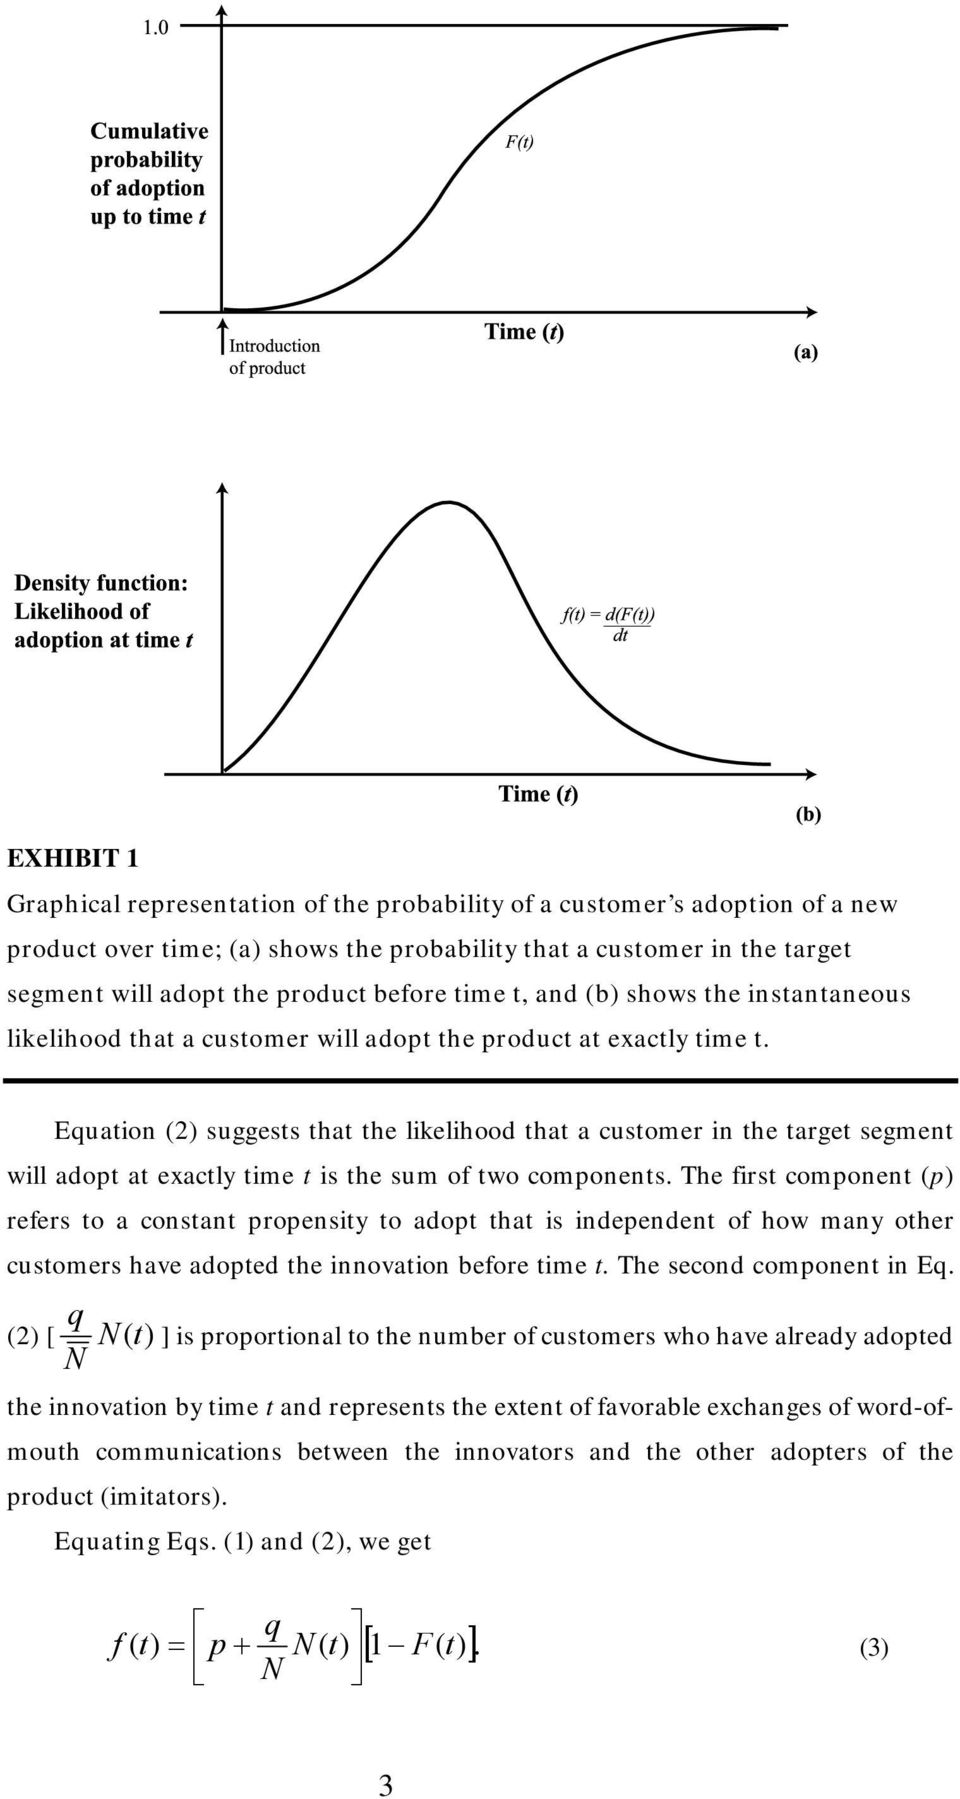 Equation (2) suggests that the likelihood that a customer in the target segment will adopt at exactly time t is the sum of two components.